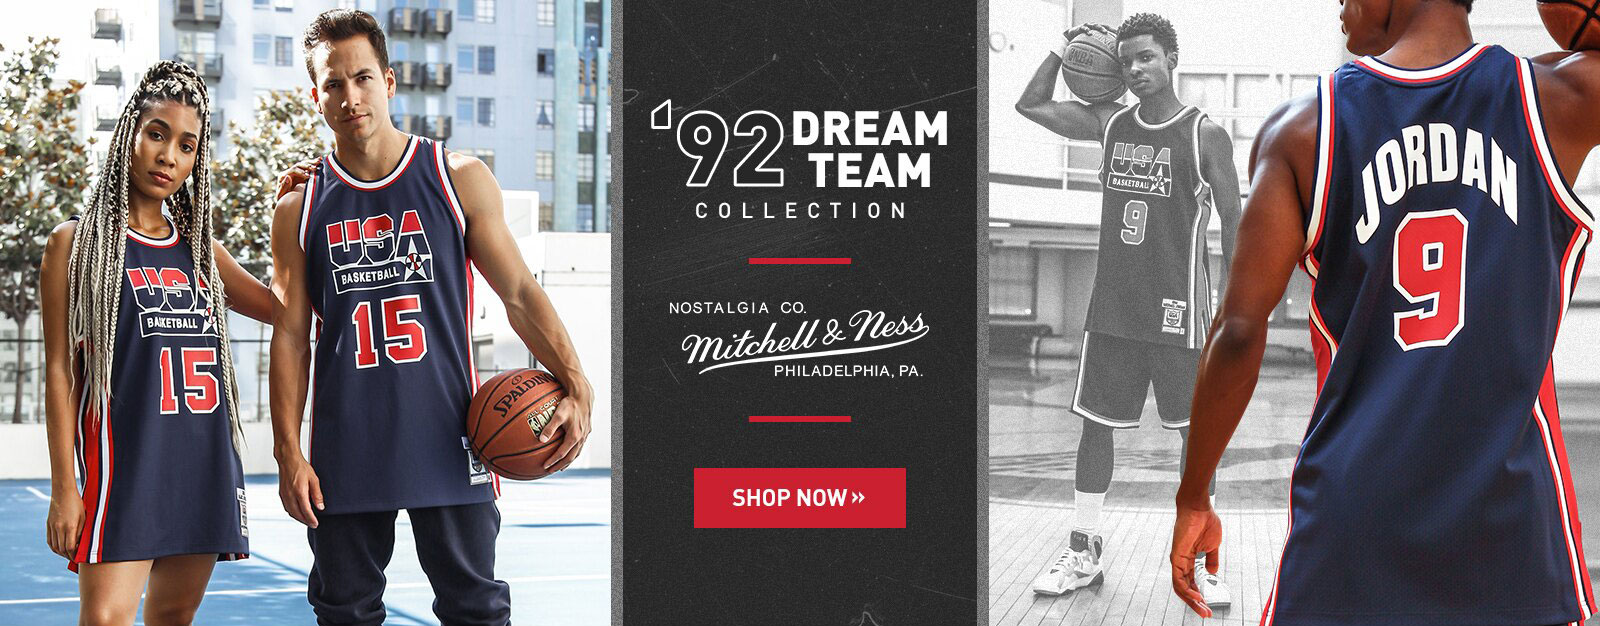 1992-nba-dream-team-basketball-collection